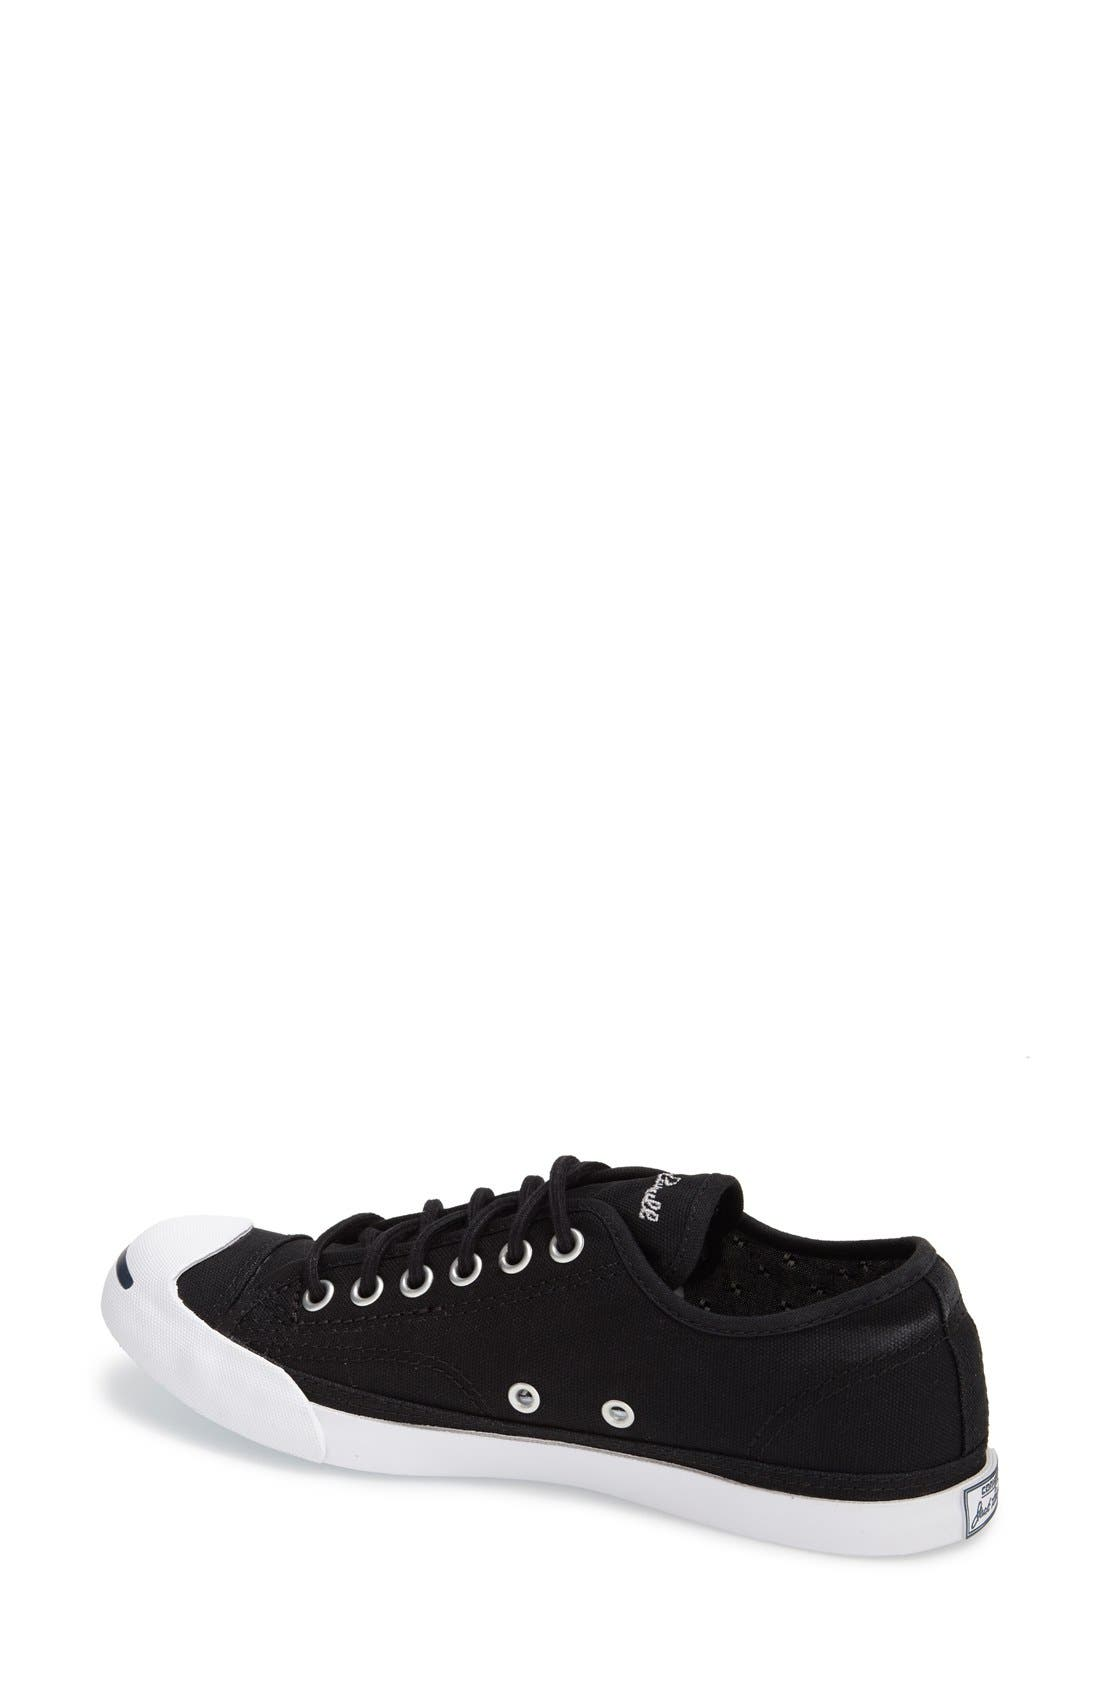 'Jack Purcell' Low Top Slip On Sneaker,                             Alternate thumbnail 10, color,